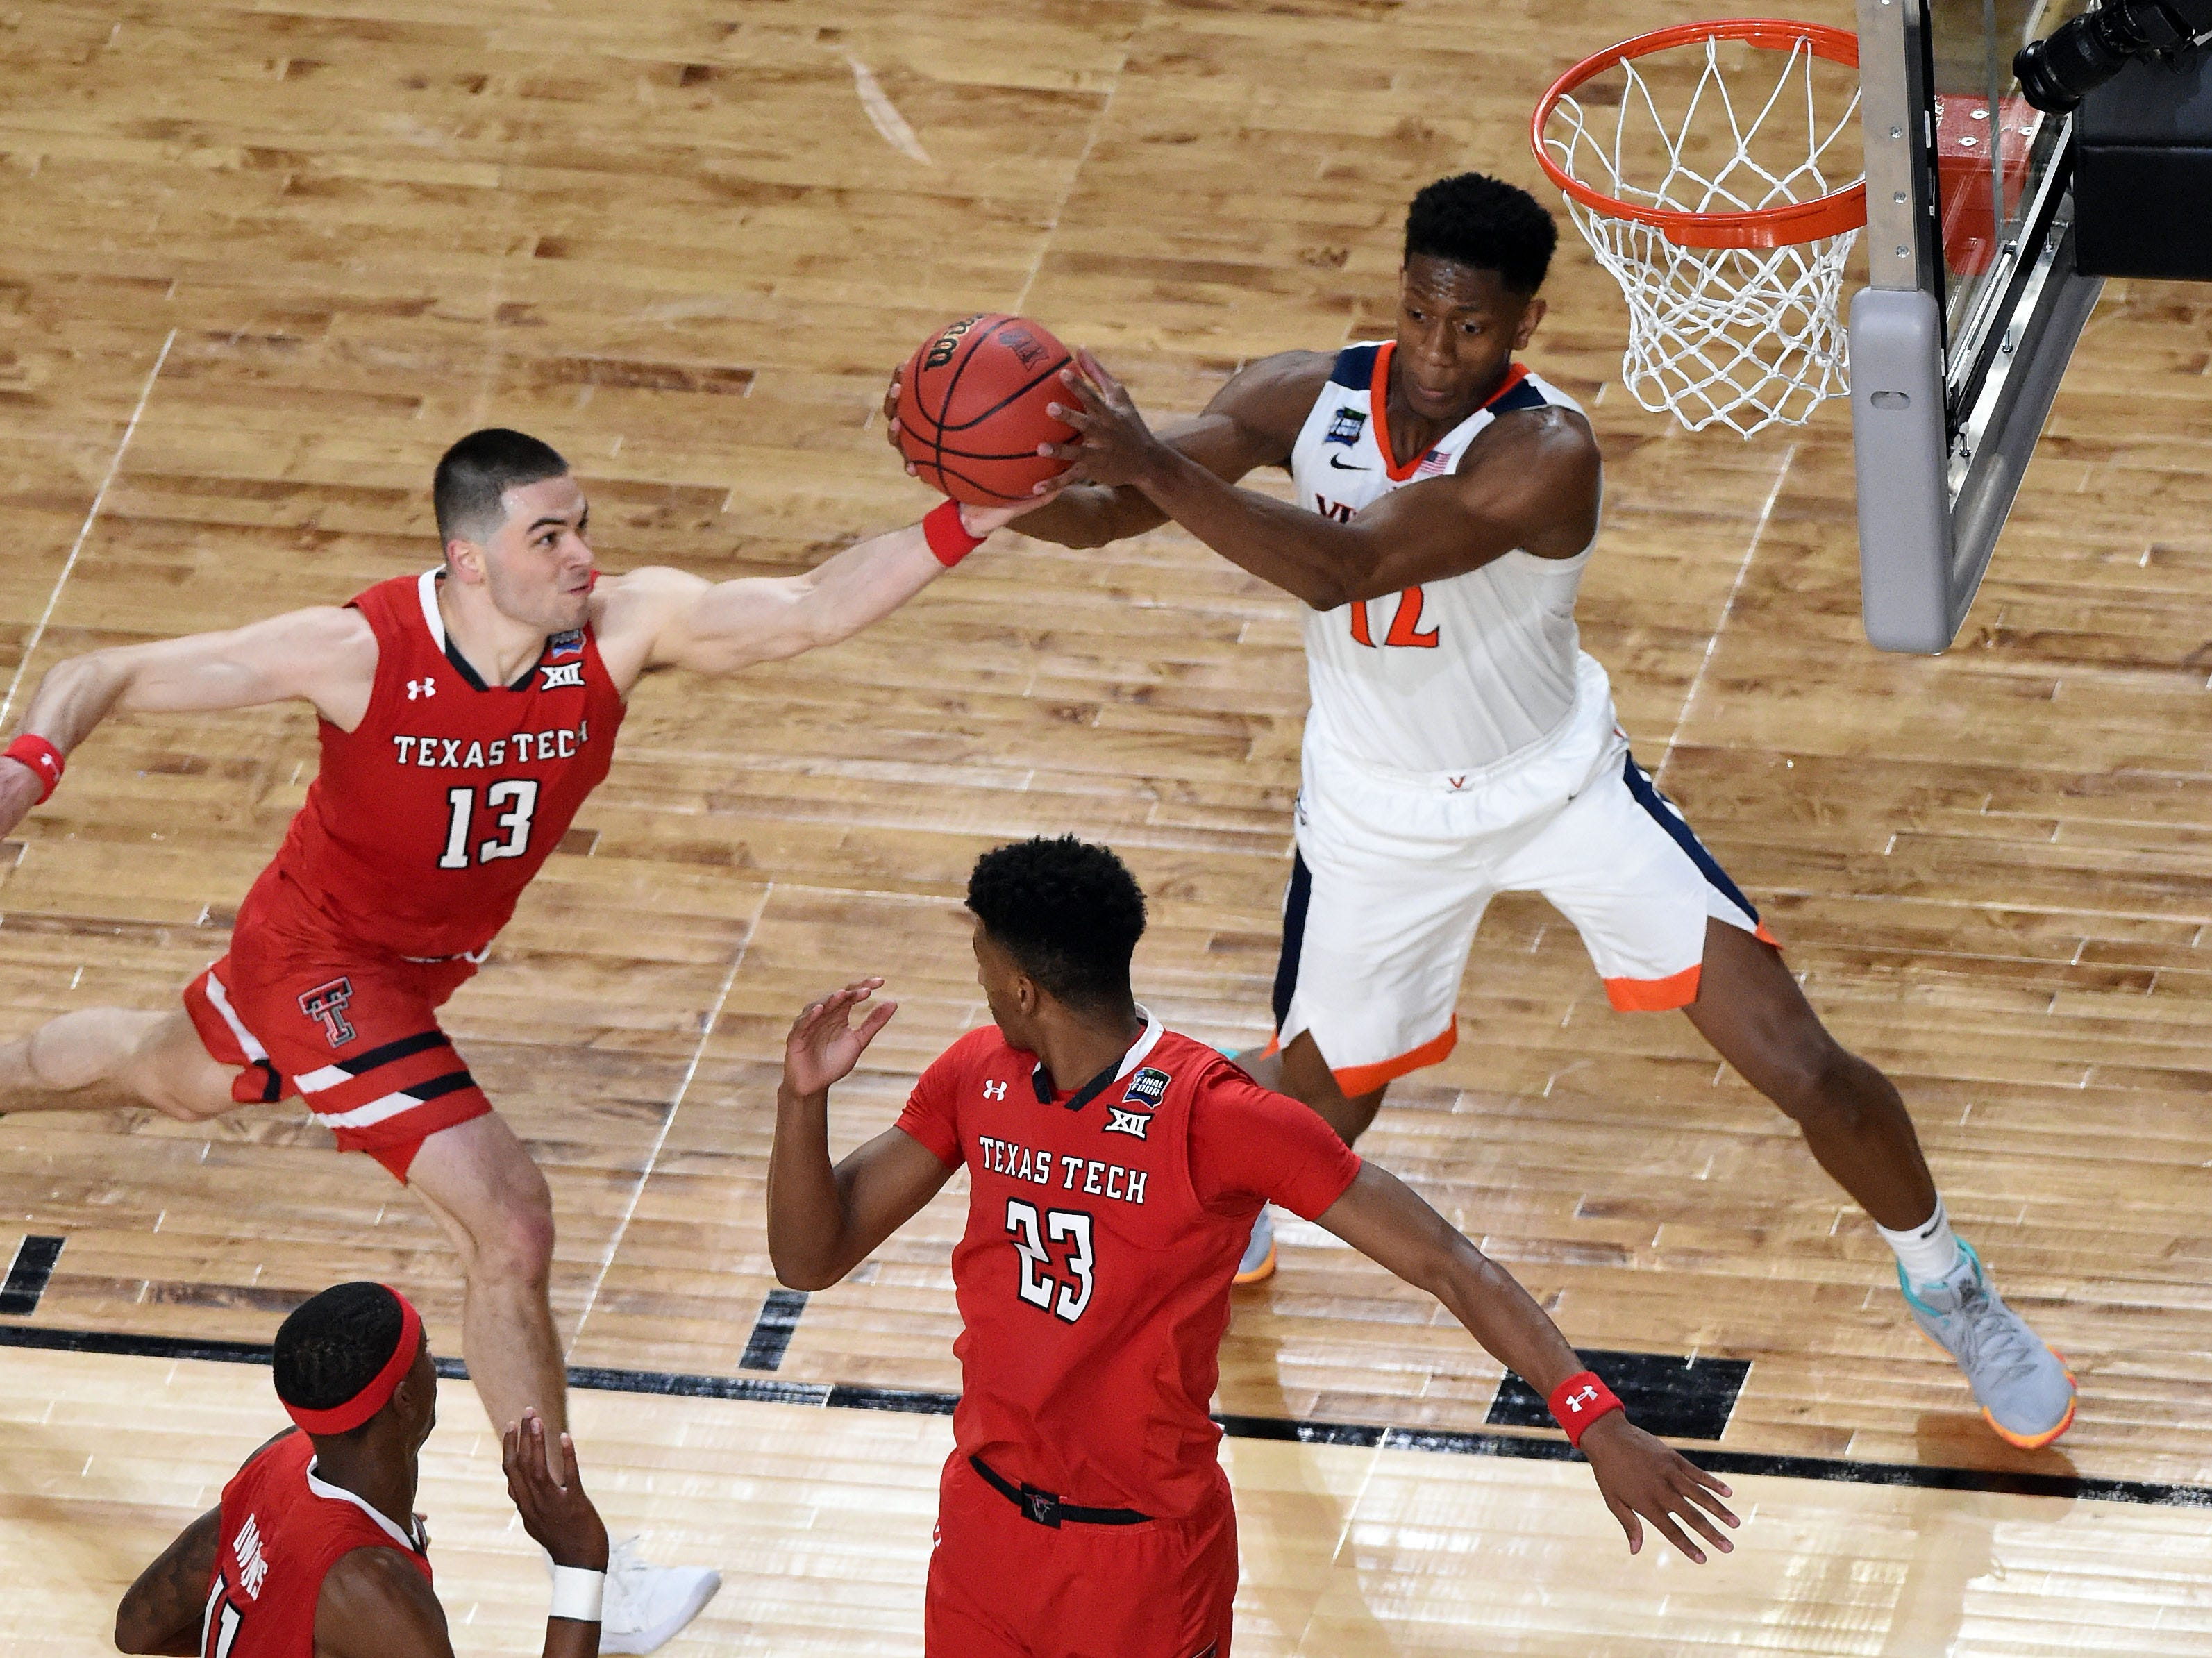 Apr 8, 2019; Minneapolis, MN, USA; Texas Tech Red Raiders guard Matt Mooney (13) defends a pass intended for Virginia Cavaliers guard De'Andre Hunter (12) during the second half in the championship game of the 2019 men's Final Four at US Bank Stadium. Mandatory Credit: Bob Donnan-USA TODAY Sports